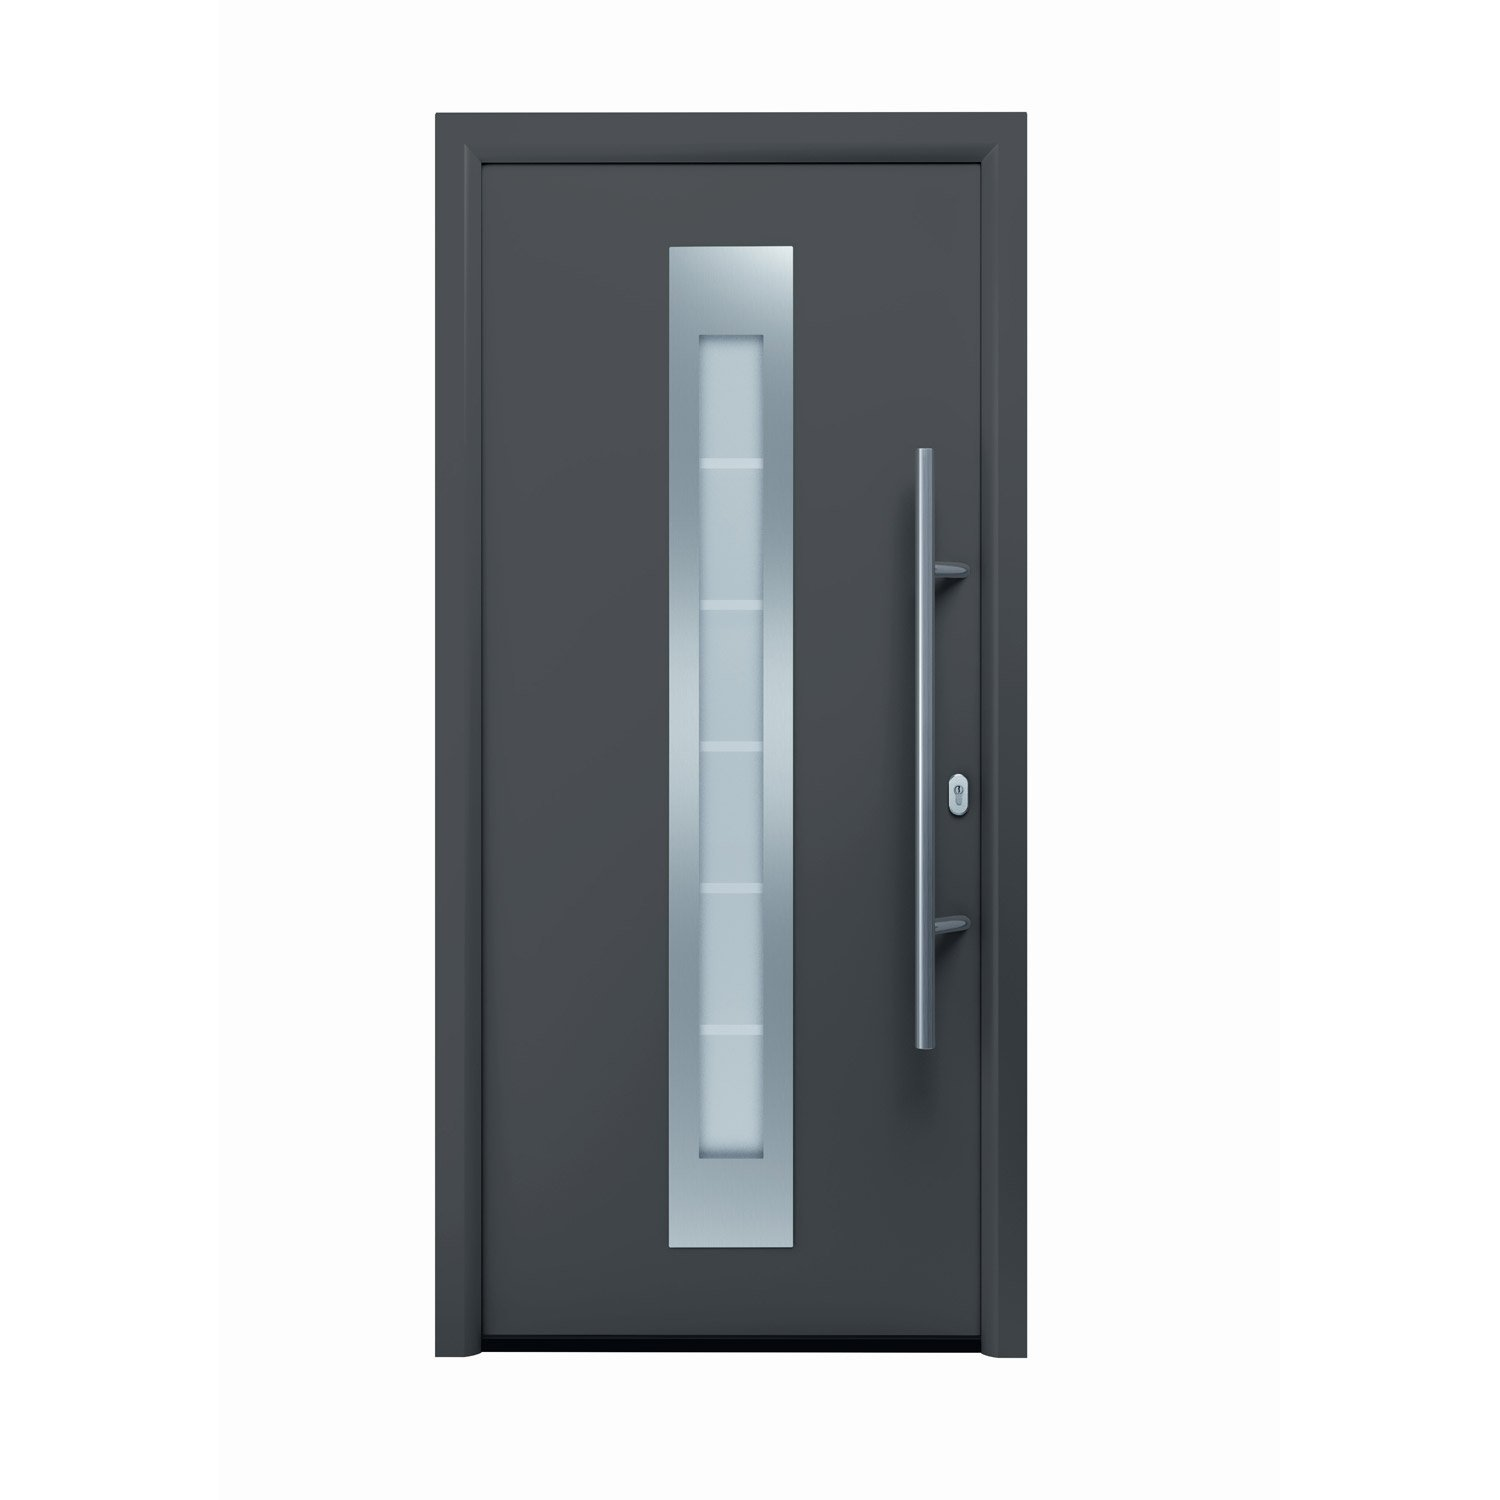 cunha castera fabricant expert de portes d 39 entr e aluminium auch. Black Bedroom Furniture Sets. Home Design Ideas